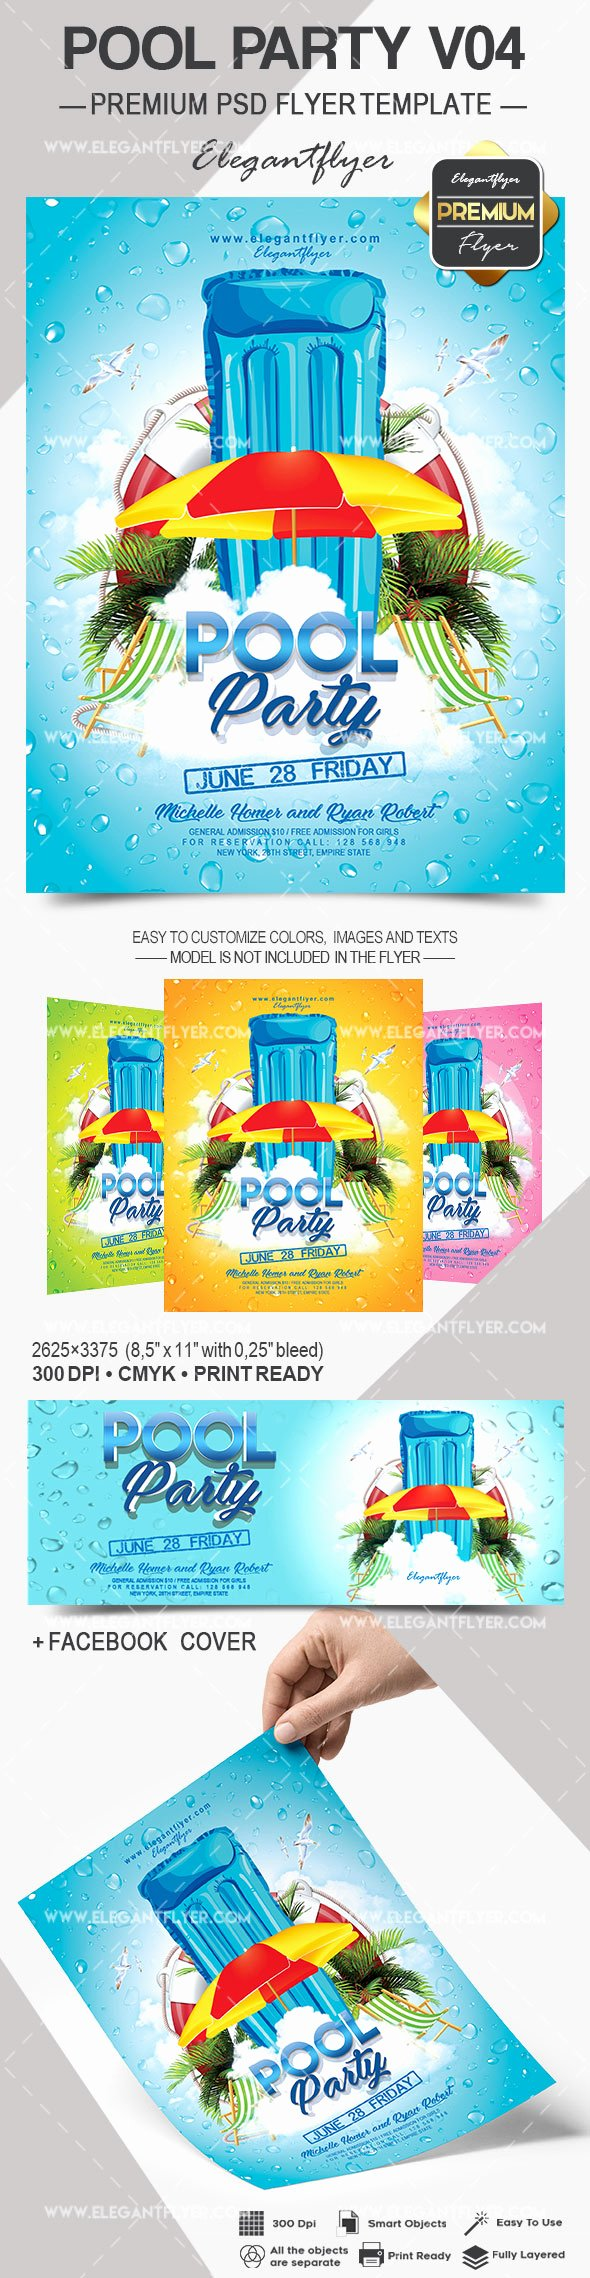 Pool Party Flyers Templates Free Best Of Pool Party V04 – Flyer Psd Template – by Elegantflyer